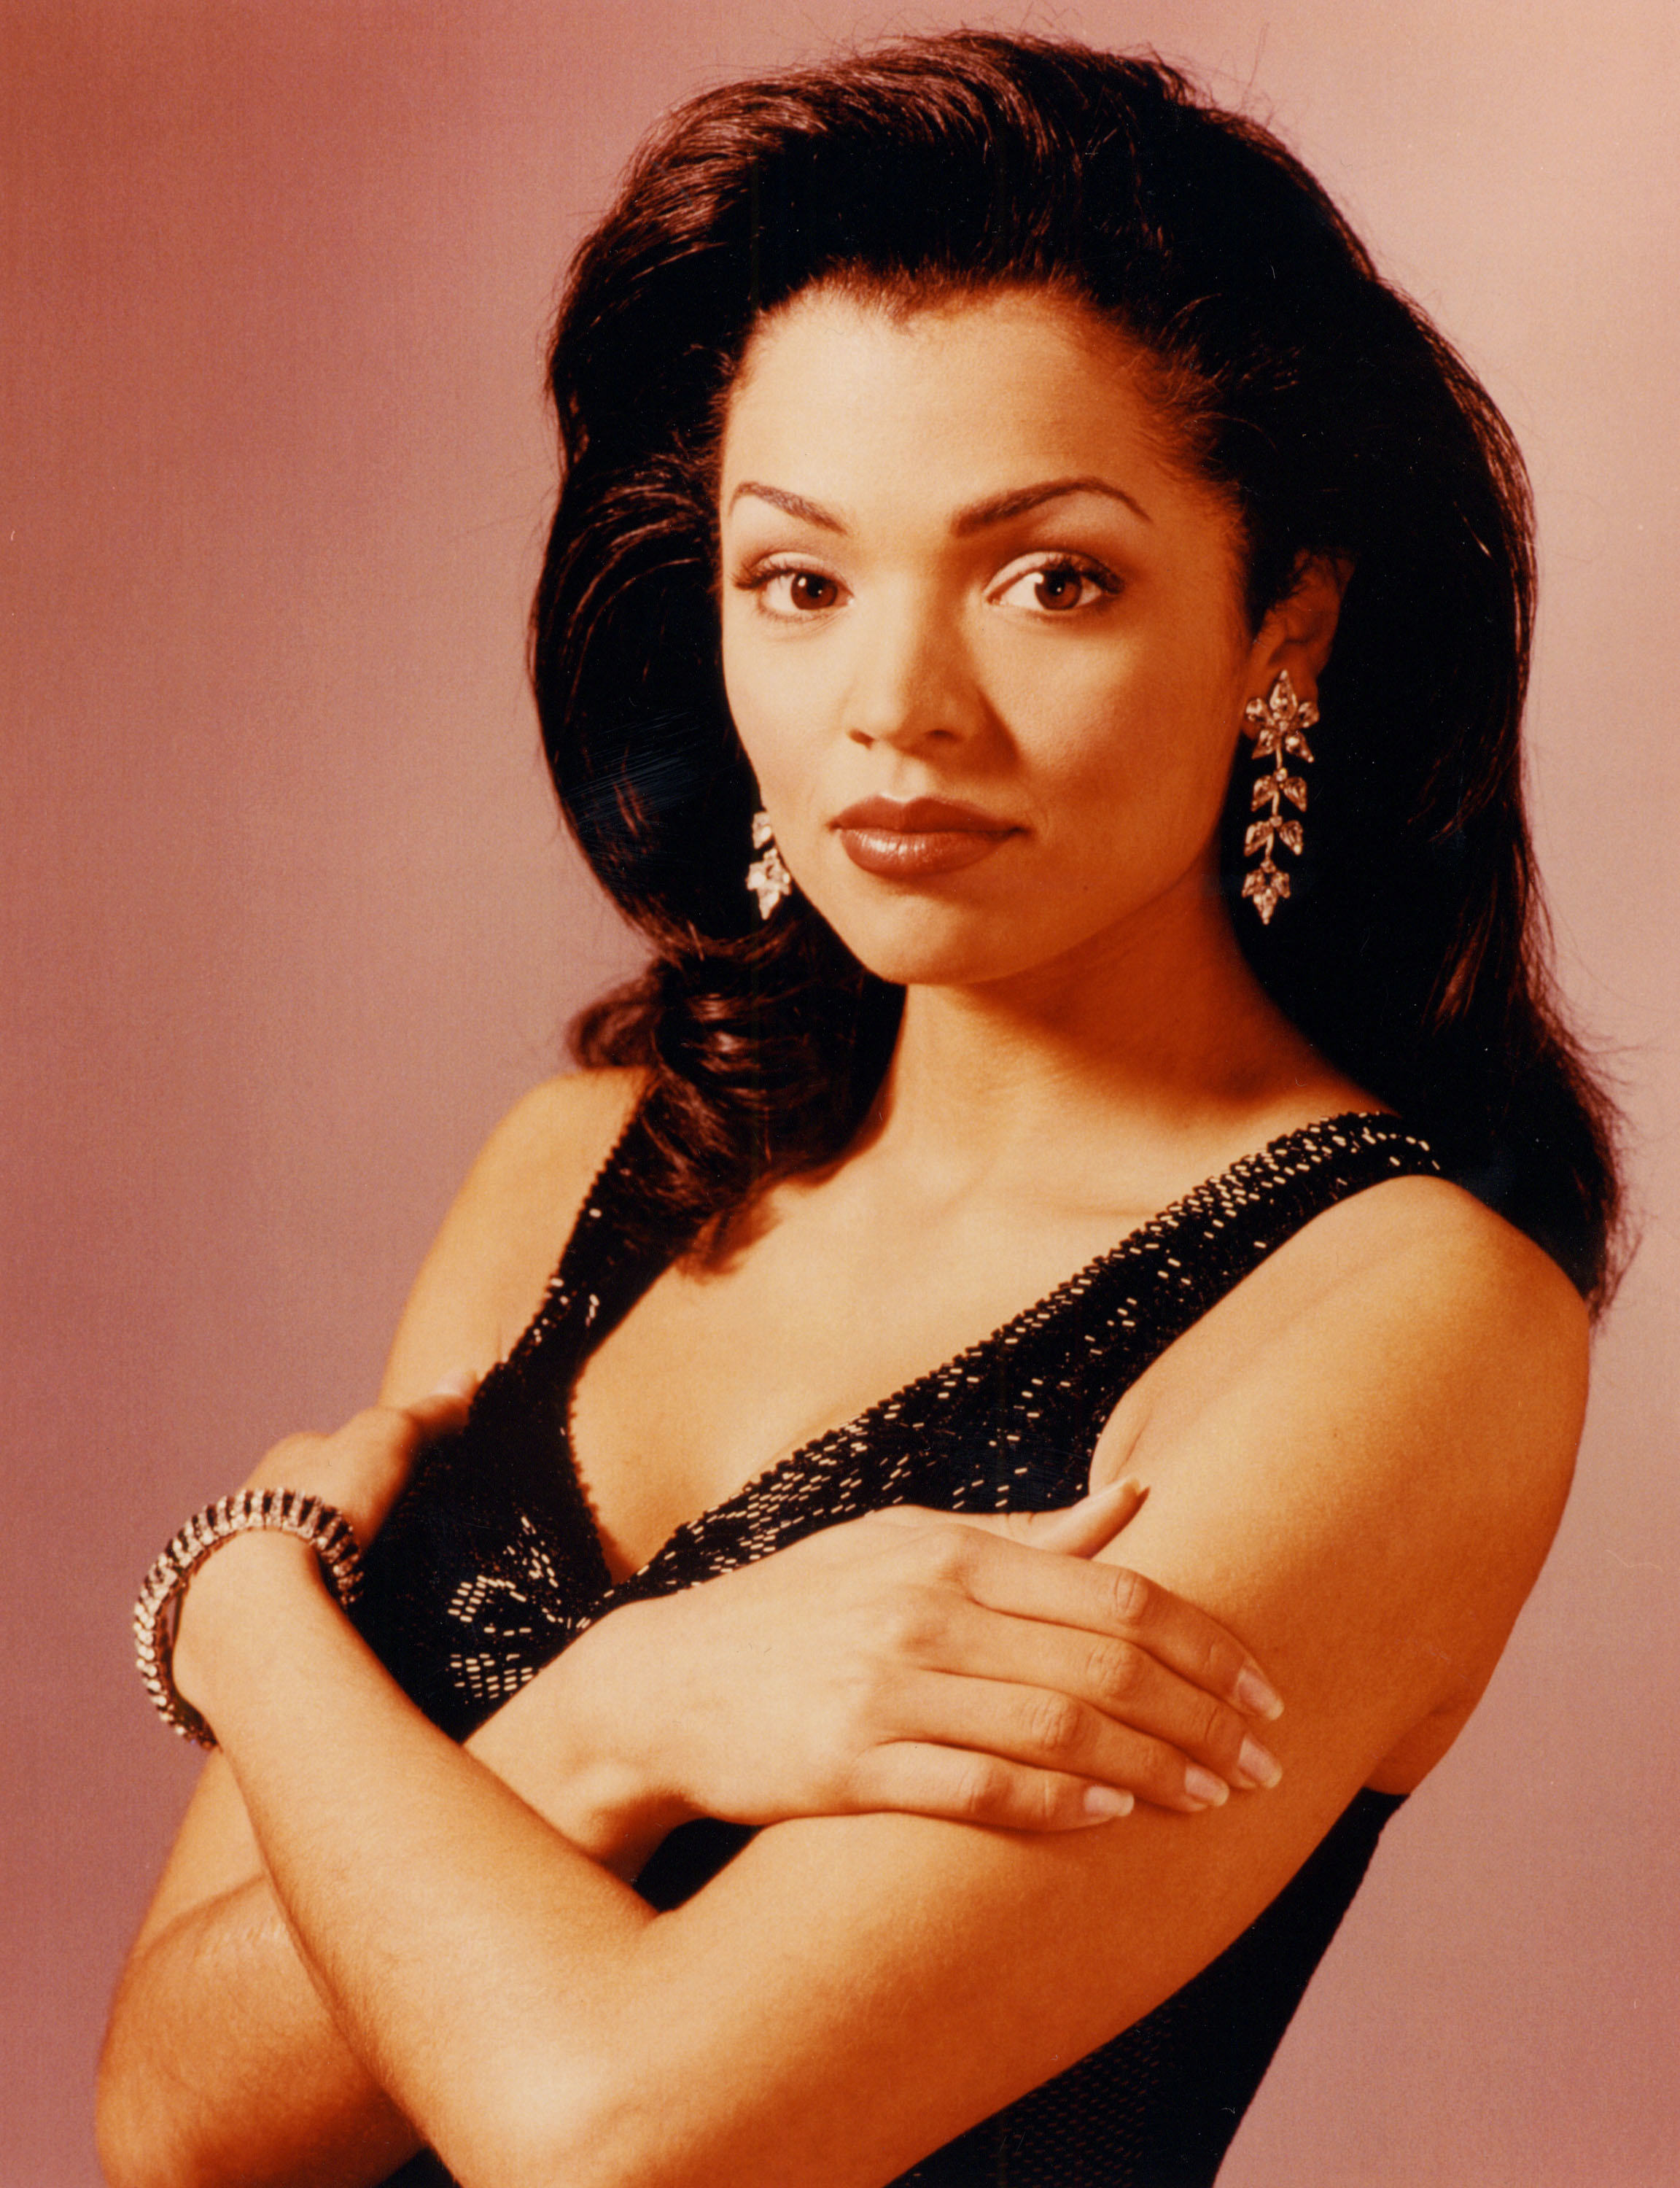 chelsi smith, miss universe 1995. † - Página 2 Image110